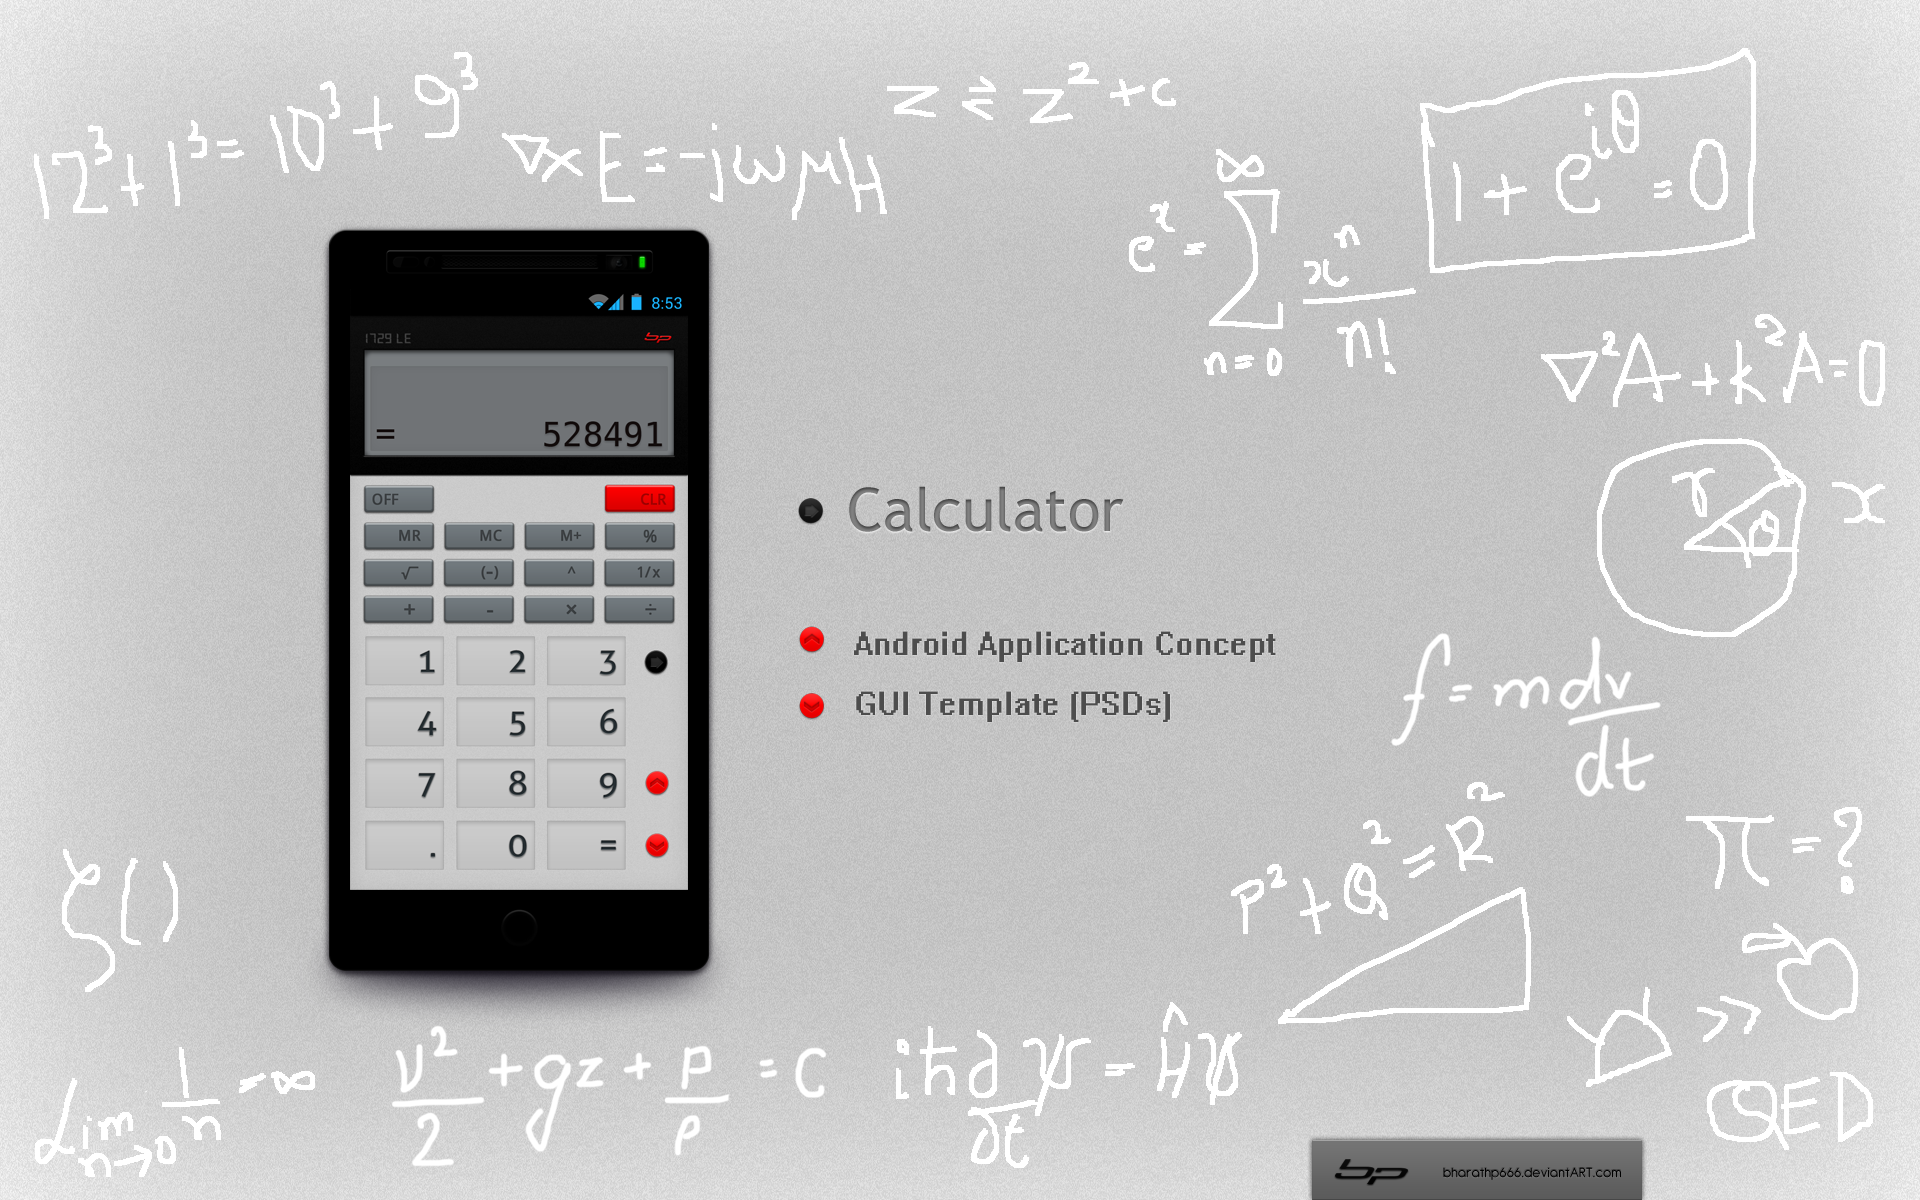 android calculator app concept by bharathp666